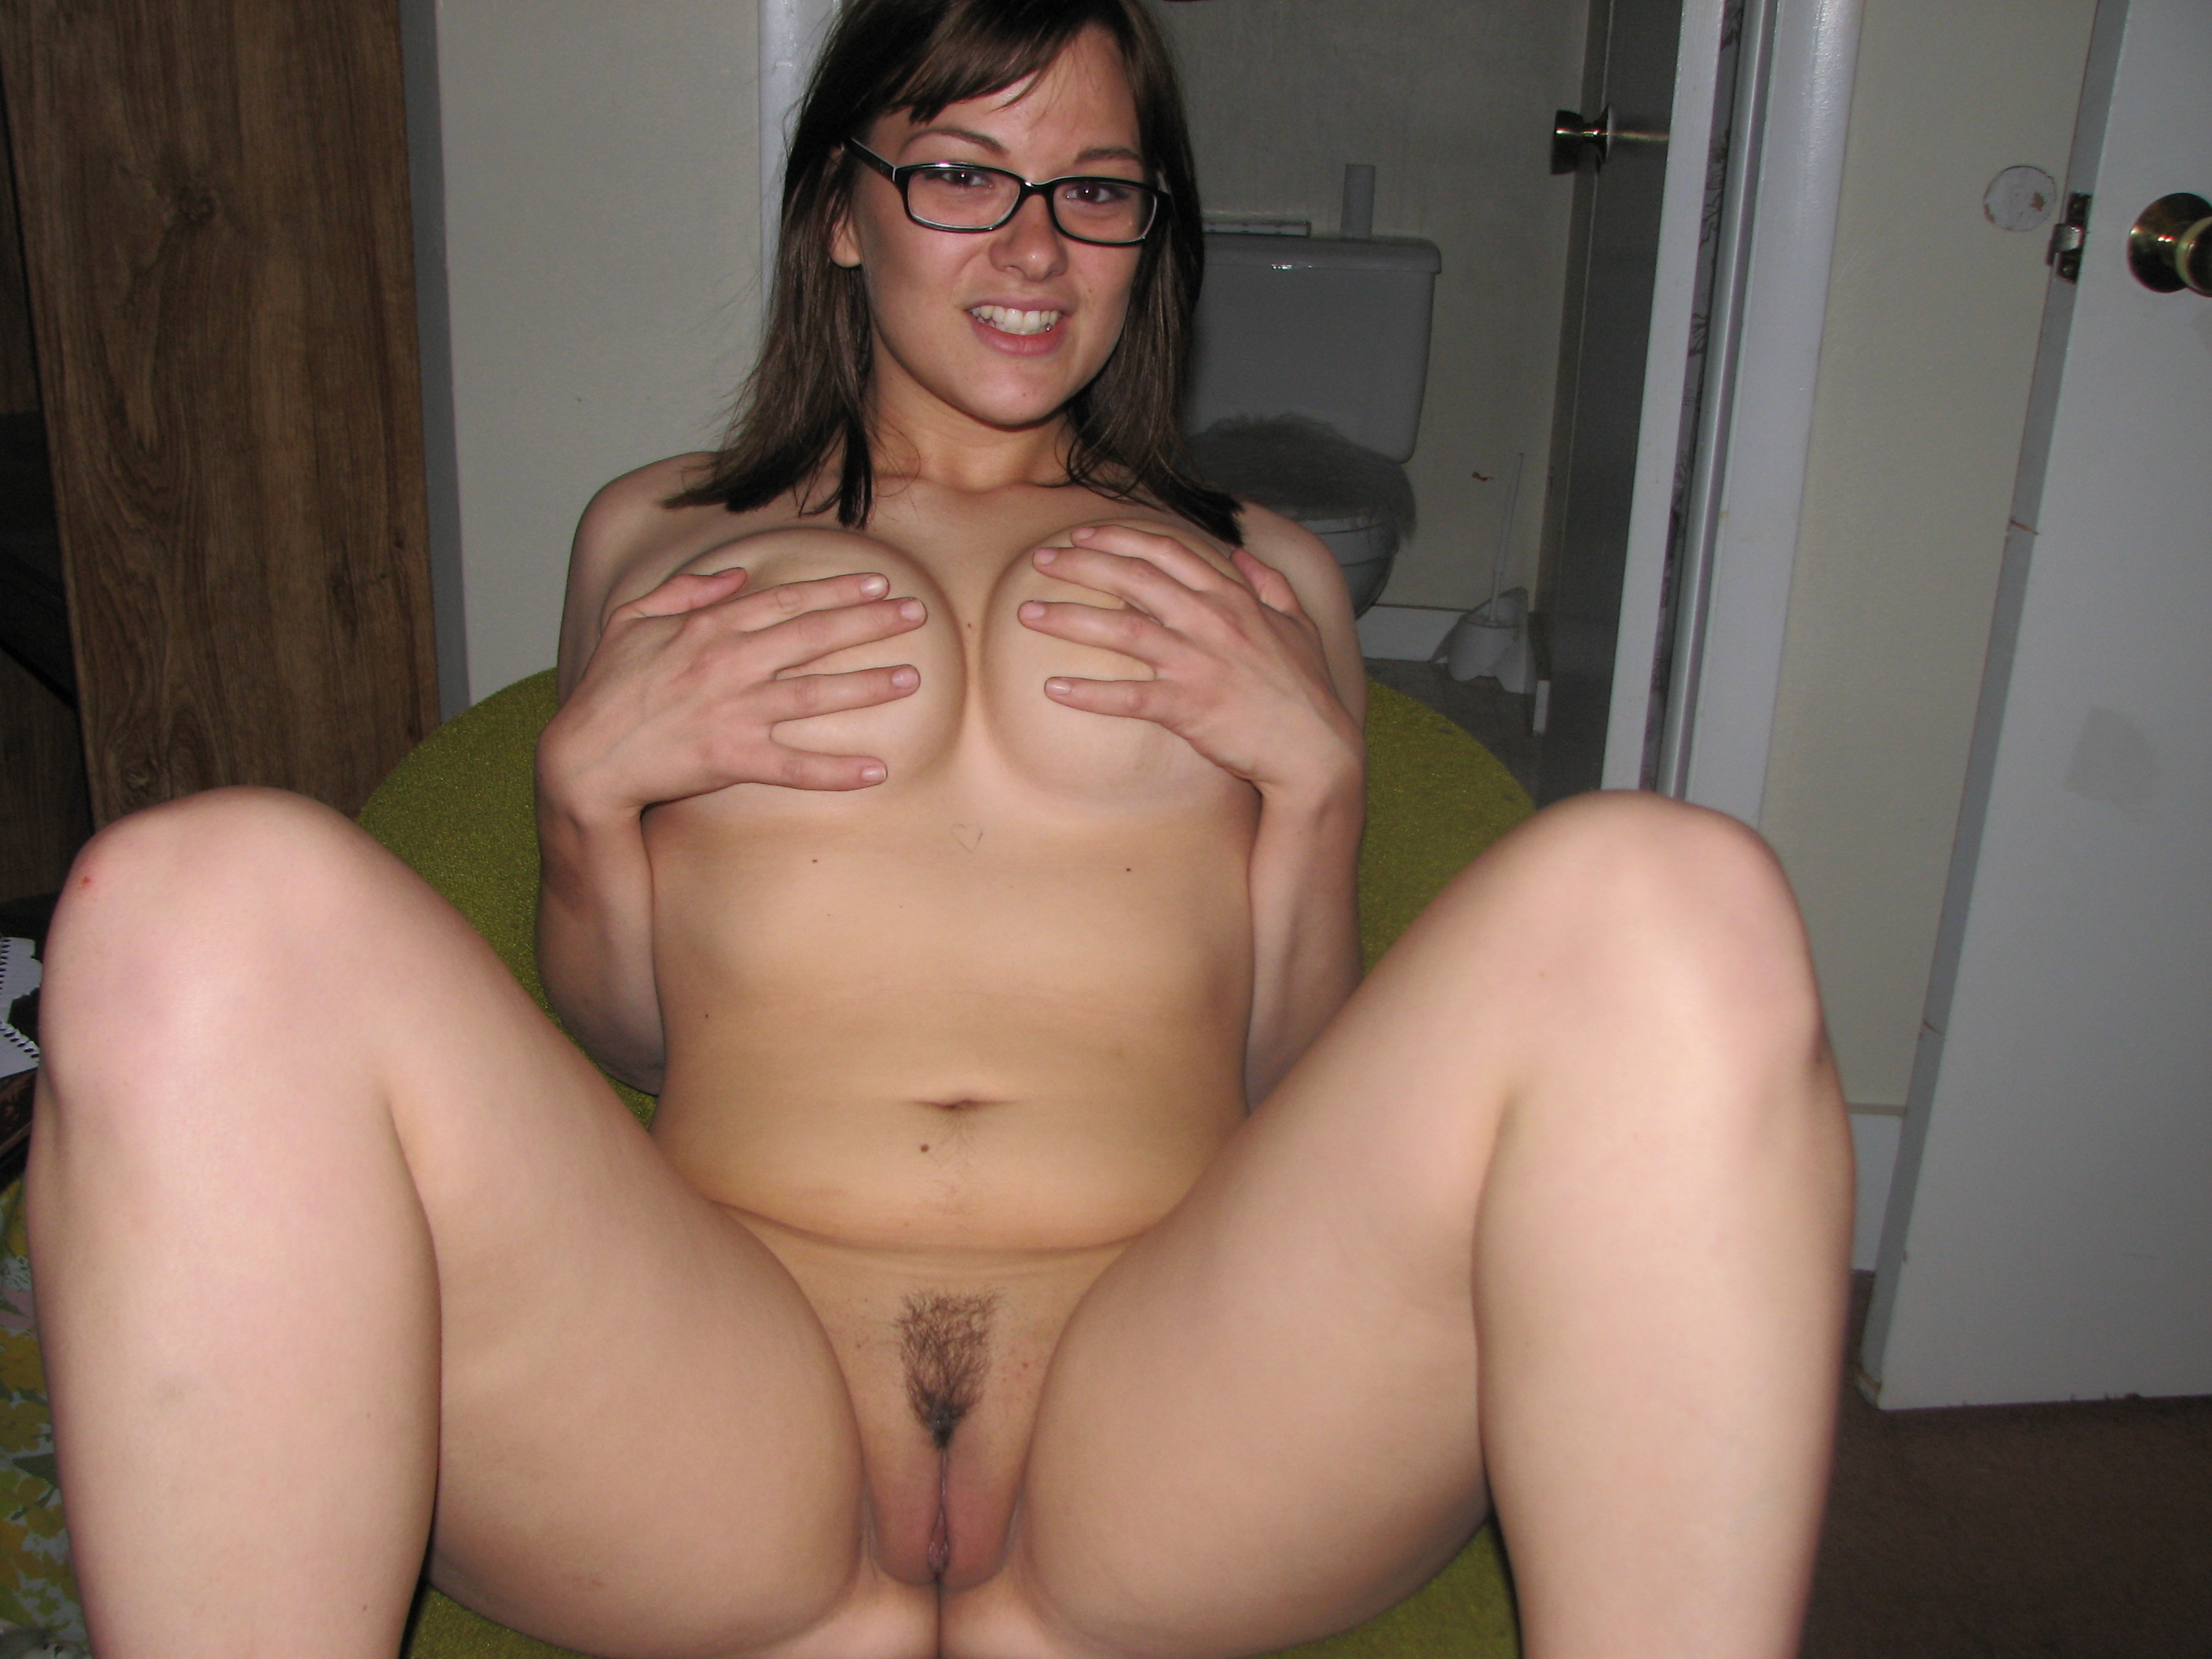 Amazingly! short and thick nude girl amusing